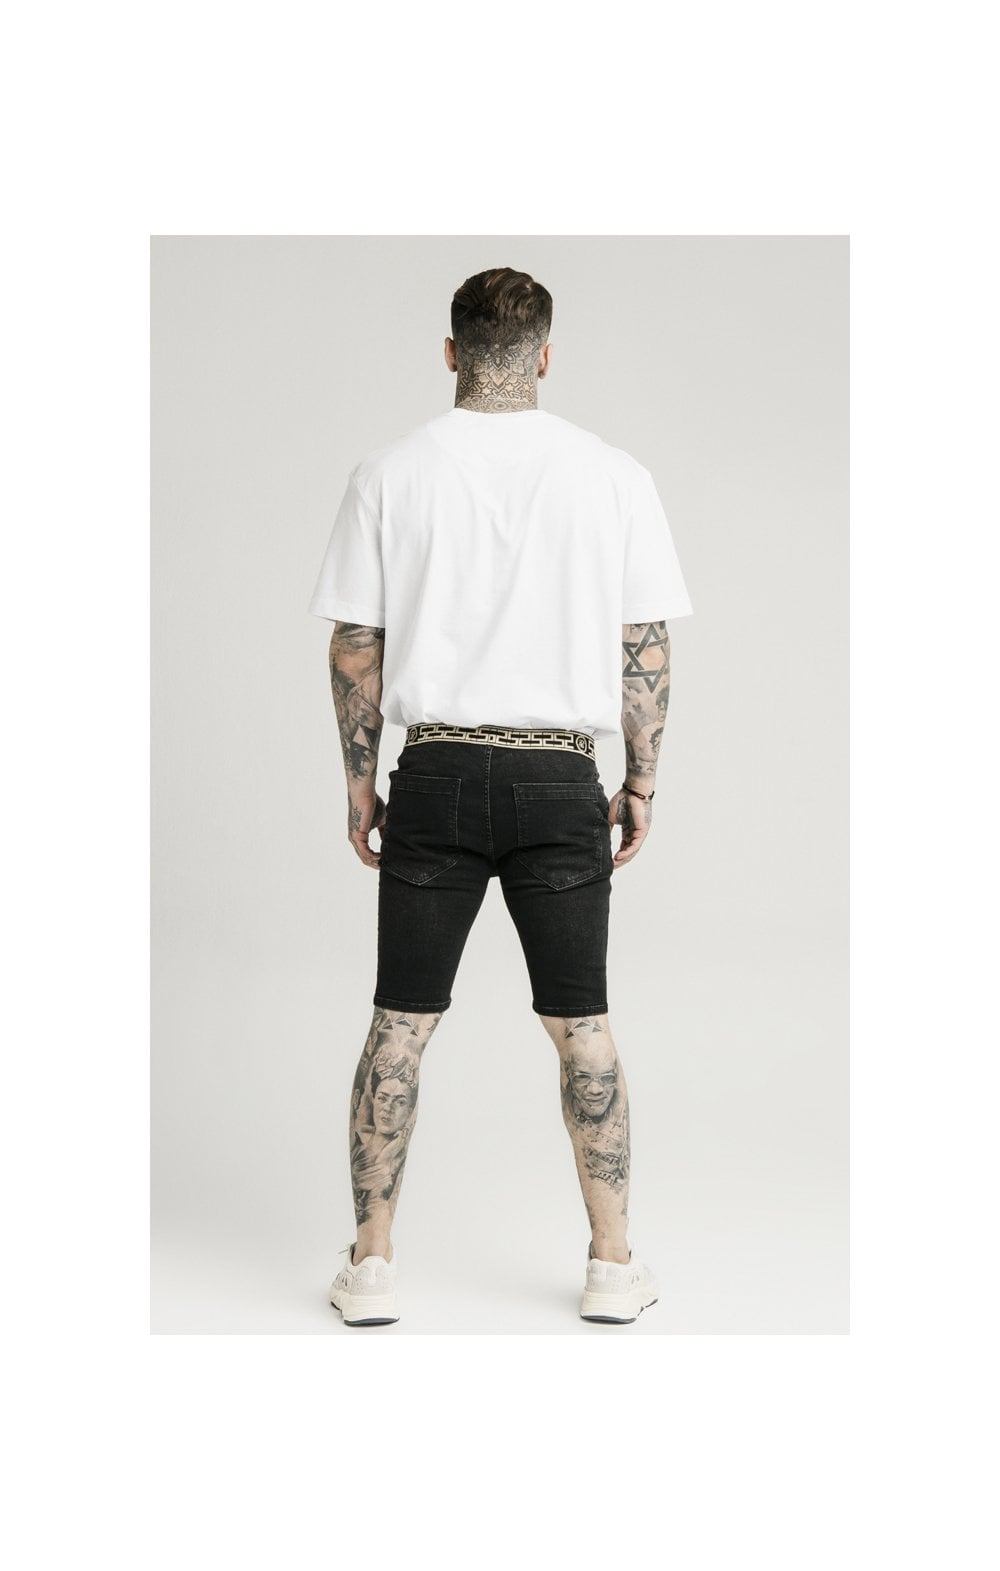 Load image into Gallery viewer, SikSilk Elasticated Waist Distressed Denim Shorts – Black (5)